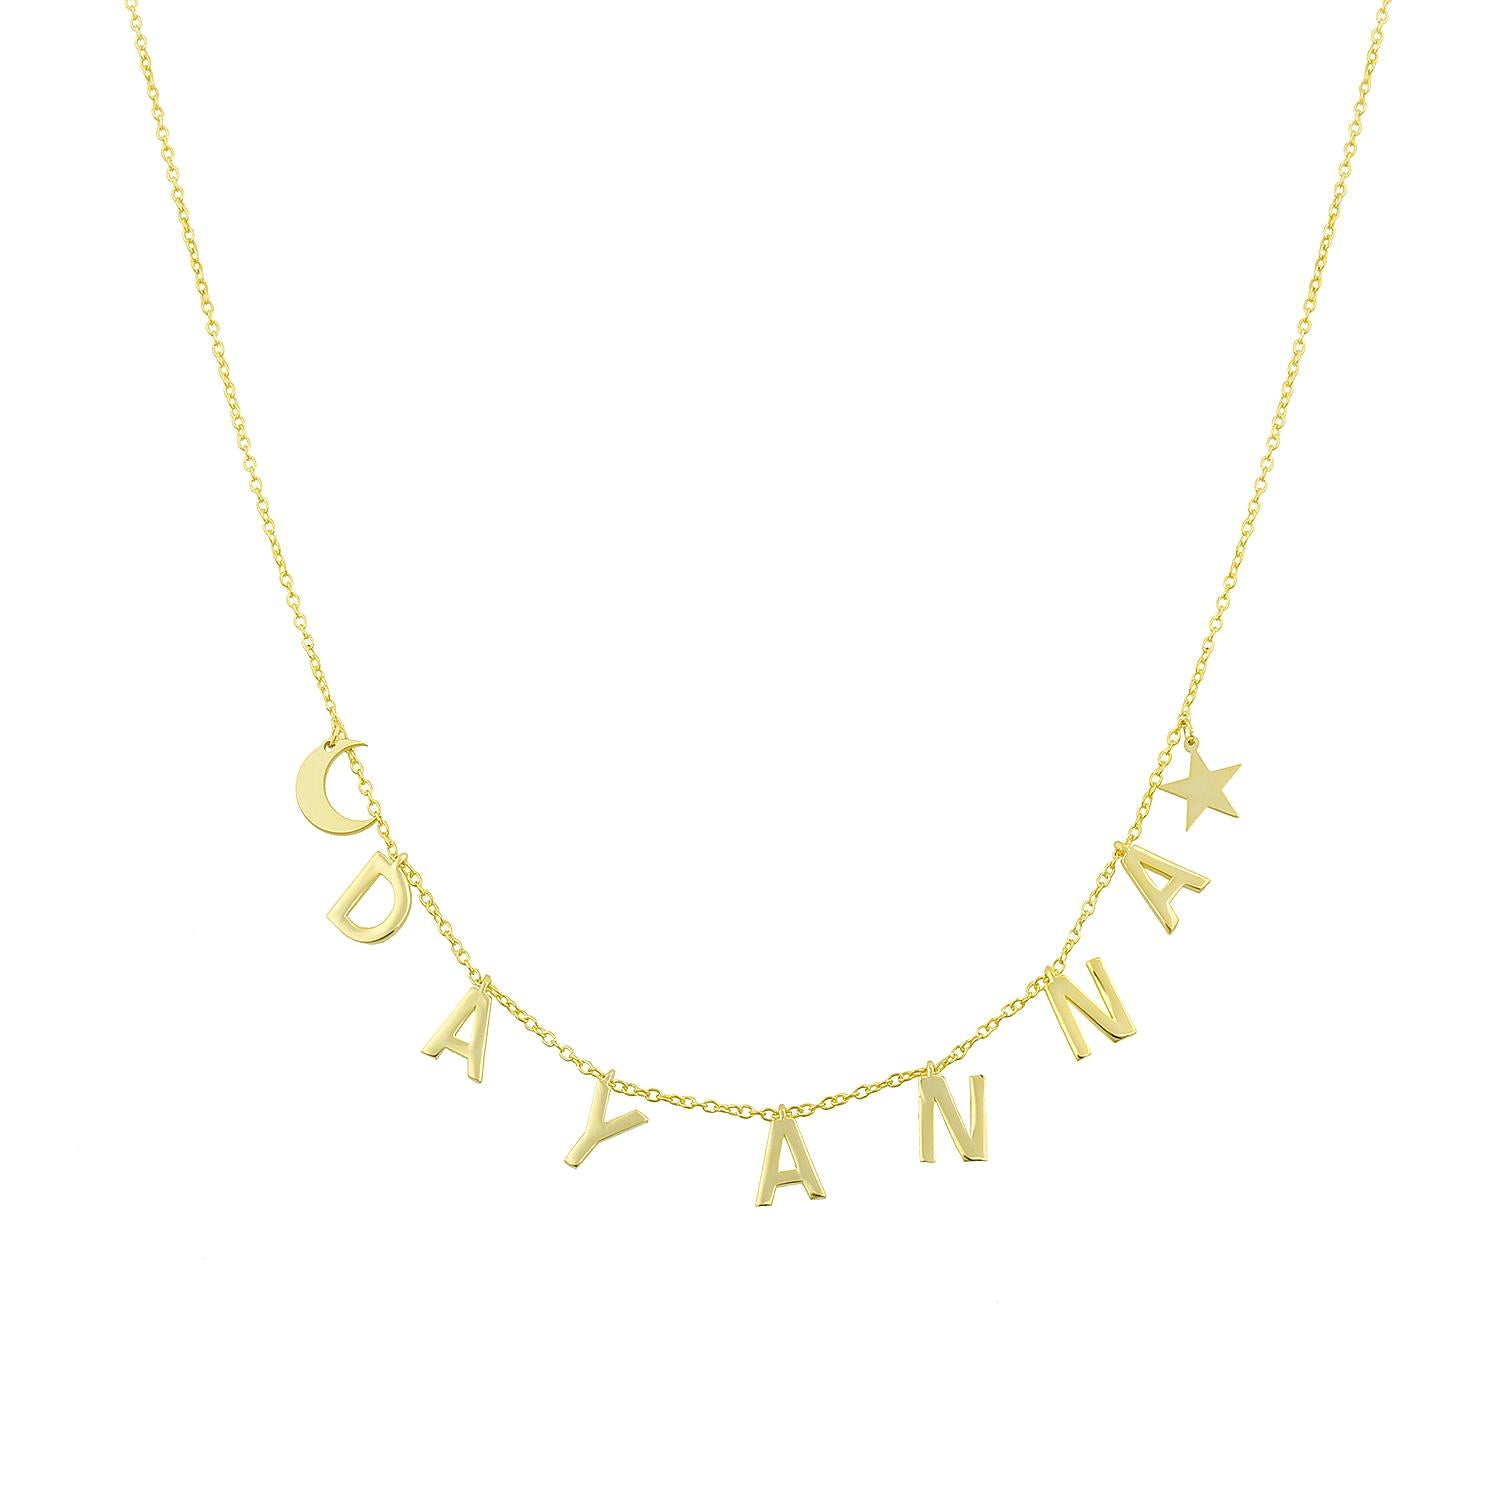 Celestial Dangling Name Necklace